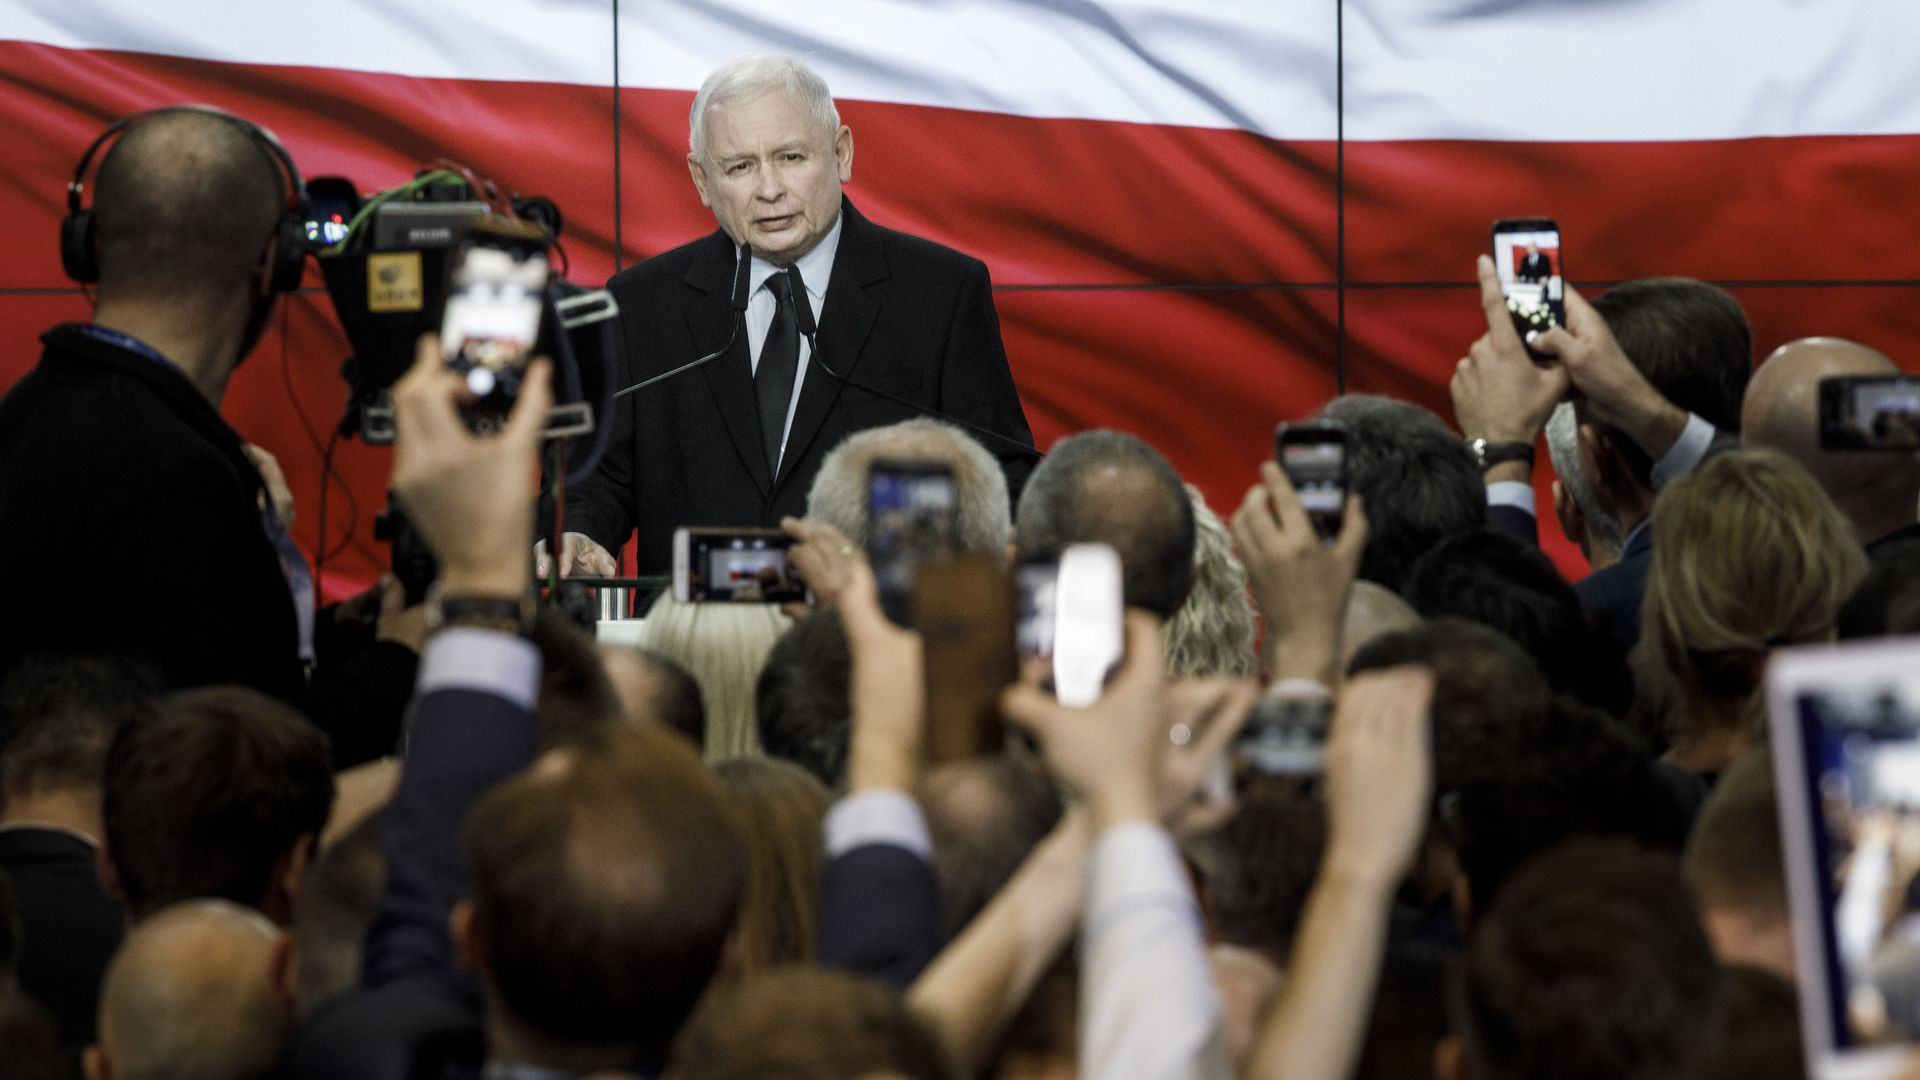 Jaroslaw Kaczynski, leader of the Law and Justice political party (PiS), speaks to his supporters.